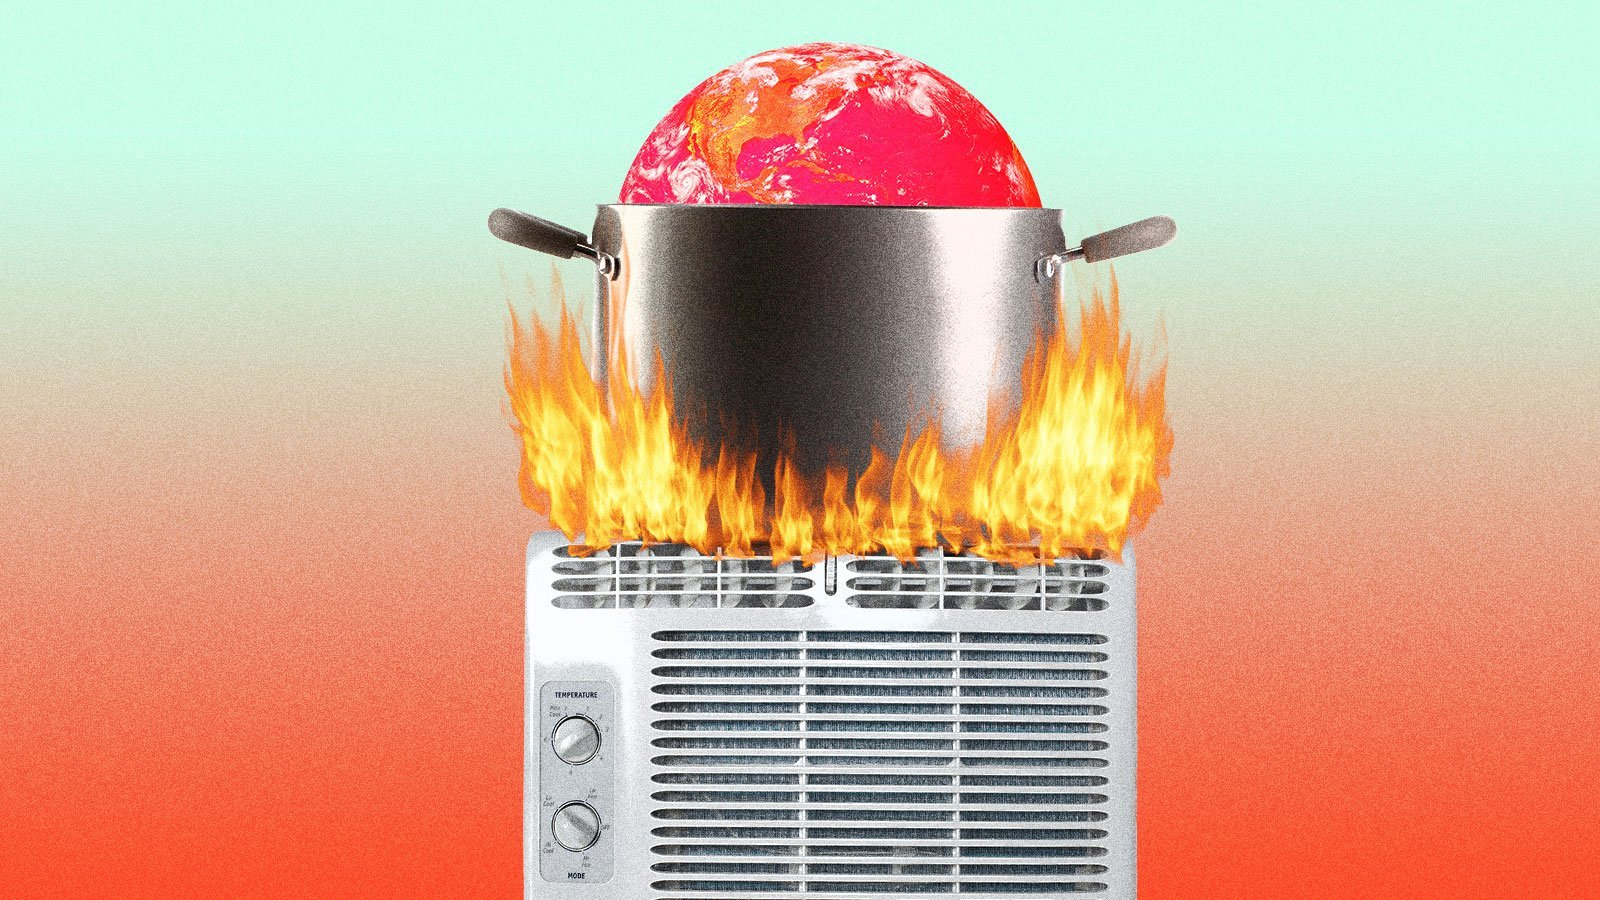 Air Conditioning is Making Earth Hotter. Here's What We Can Do About It